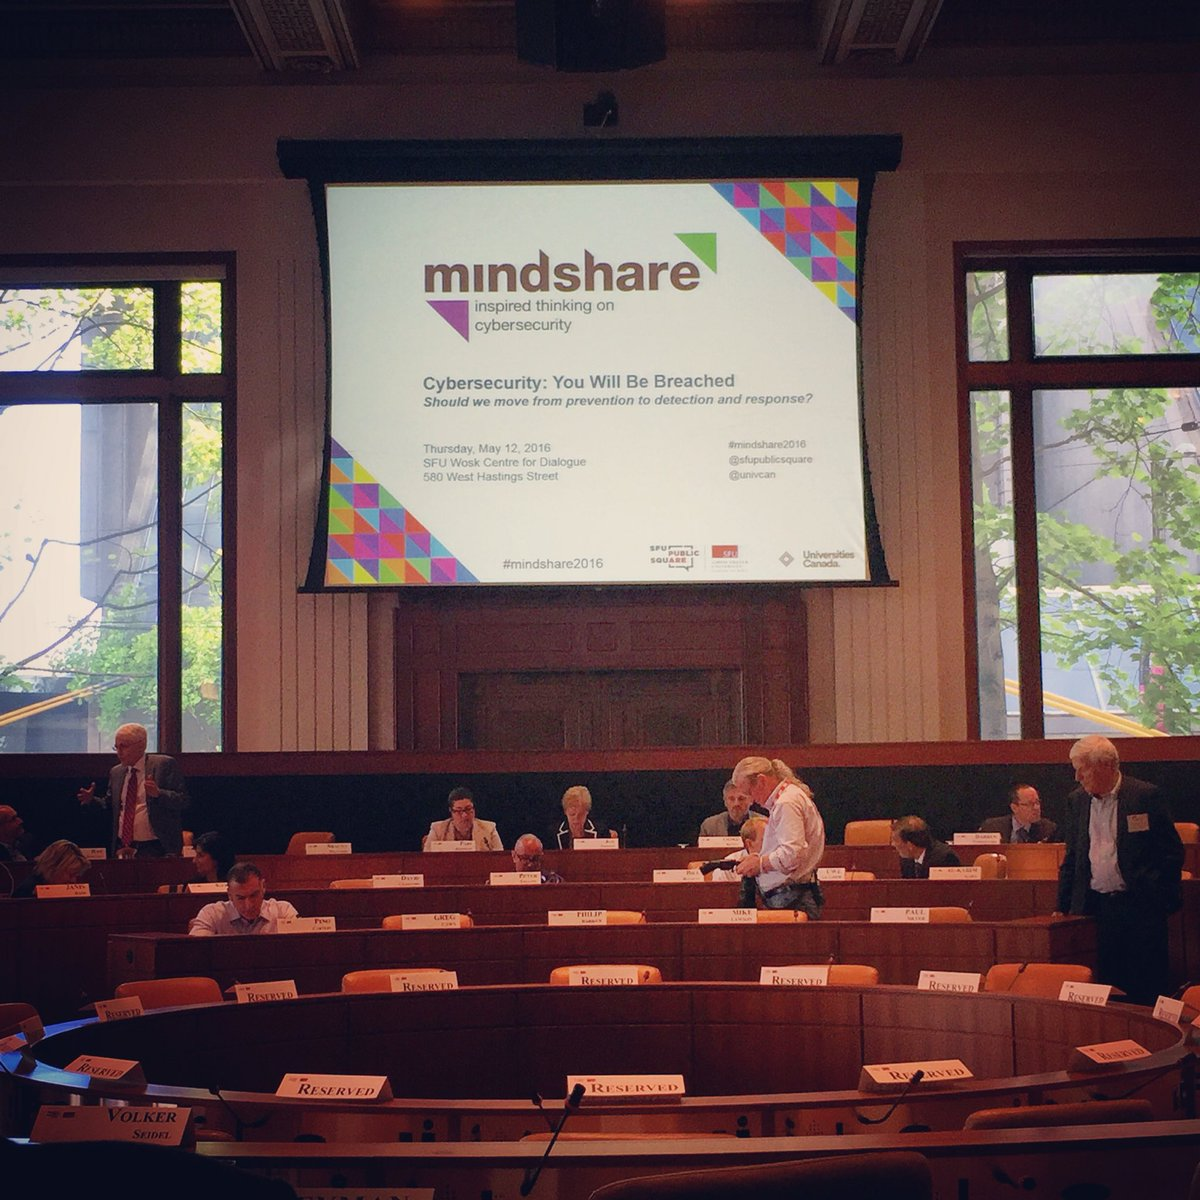 At #mindshare2016 learning about cybersecurity. Thinking about why this matters for #FirstNations @SFUPublicSquare https://t.co/GJFbHYmWyC